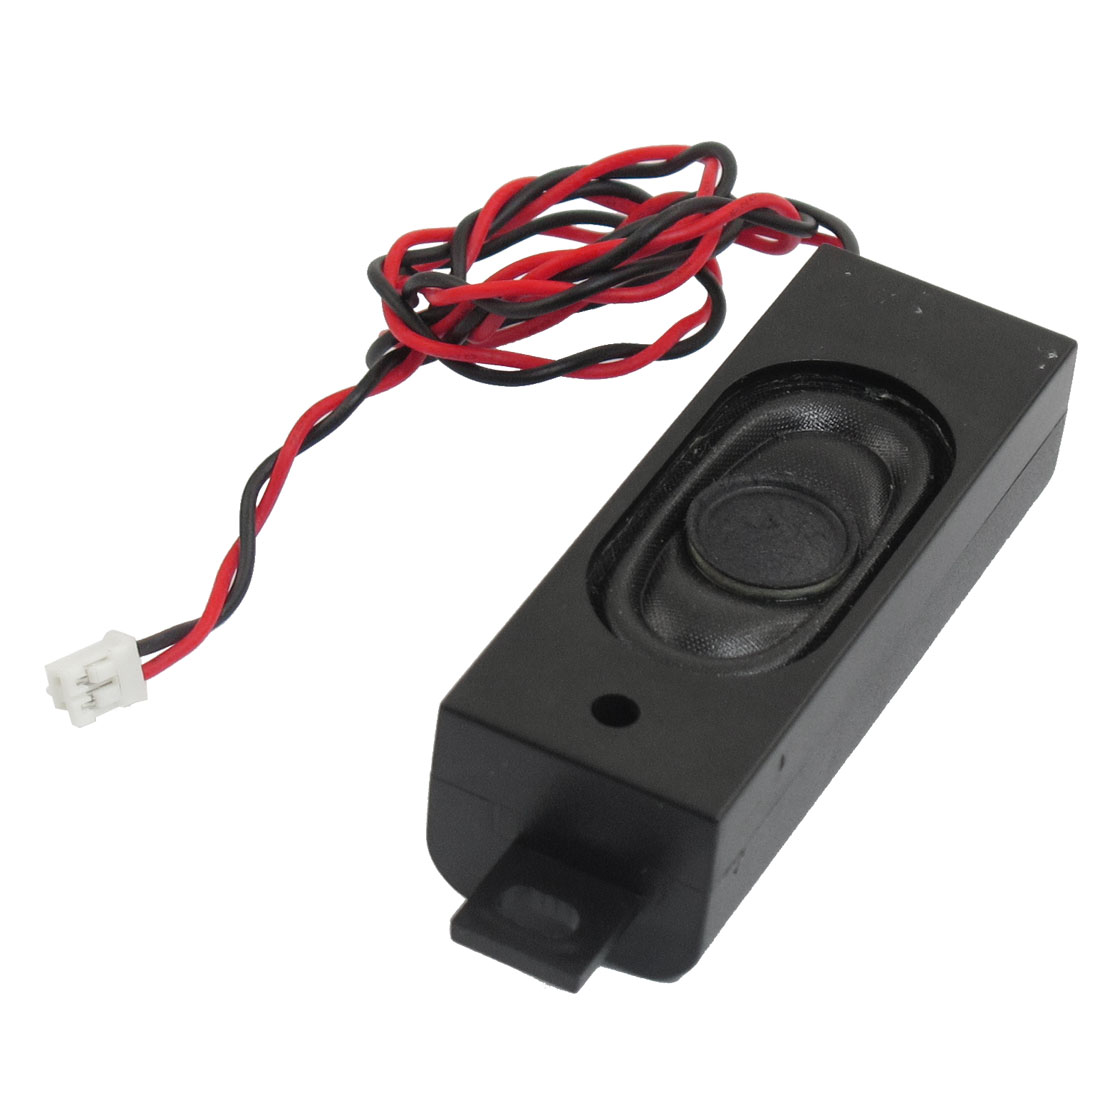 2W 8 Ohm Multimedia Music Player Speaker for Controller Board